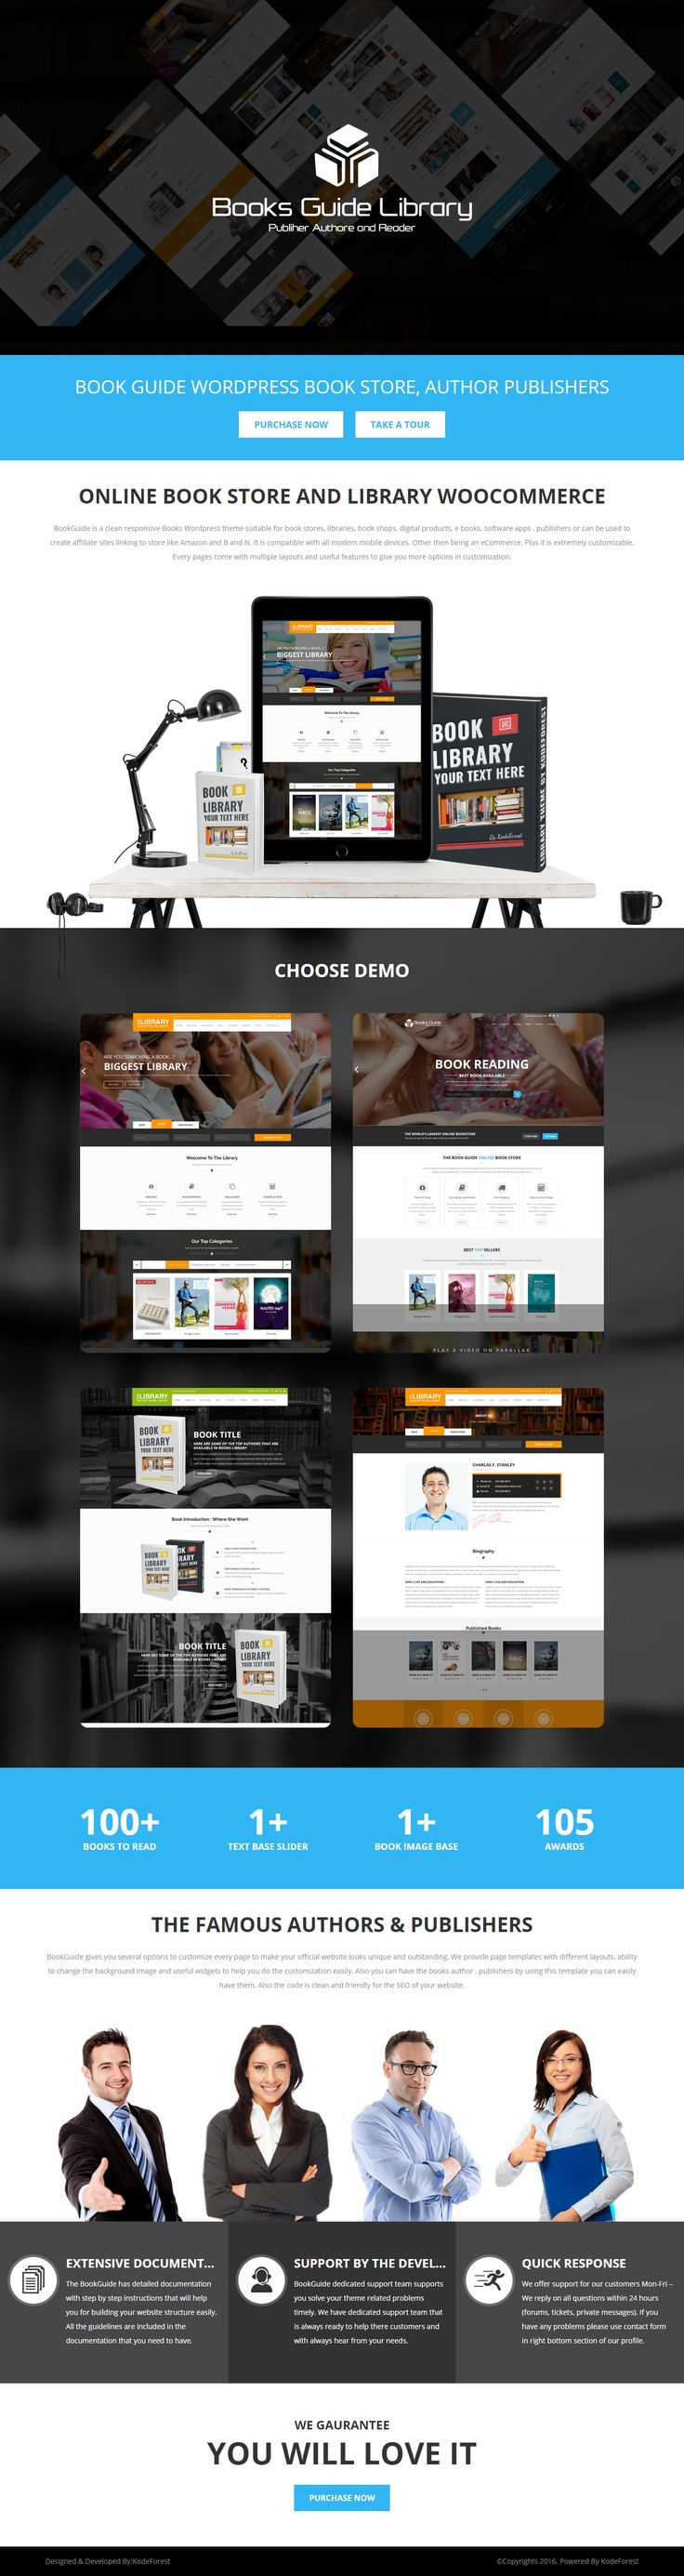 It's a robust, responsive, super-cool Wordpress Theme for eCommerce and online book store requirements. BookGuide gives a better facelift to your idea of running an Online Store. Be it your need selling physical products or ebooks, BookGuide comes as a perfect solution. What's more attractive about the theme is, it comes with multiple homepage layouts and different trending colours. With latest Wordpress version.